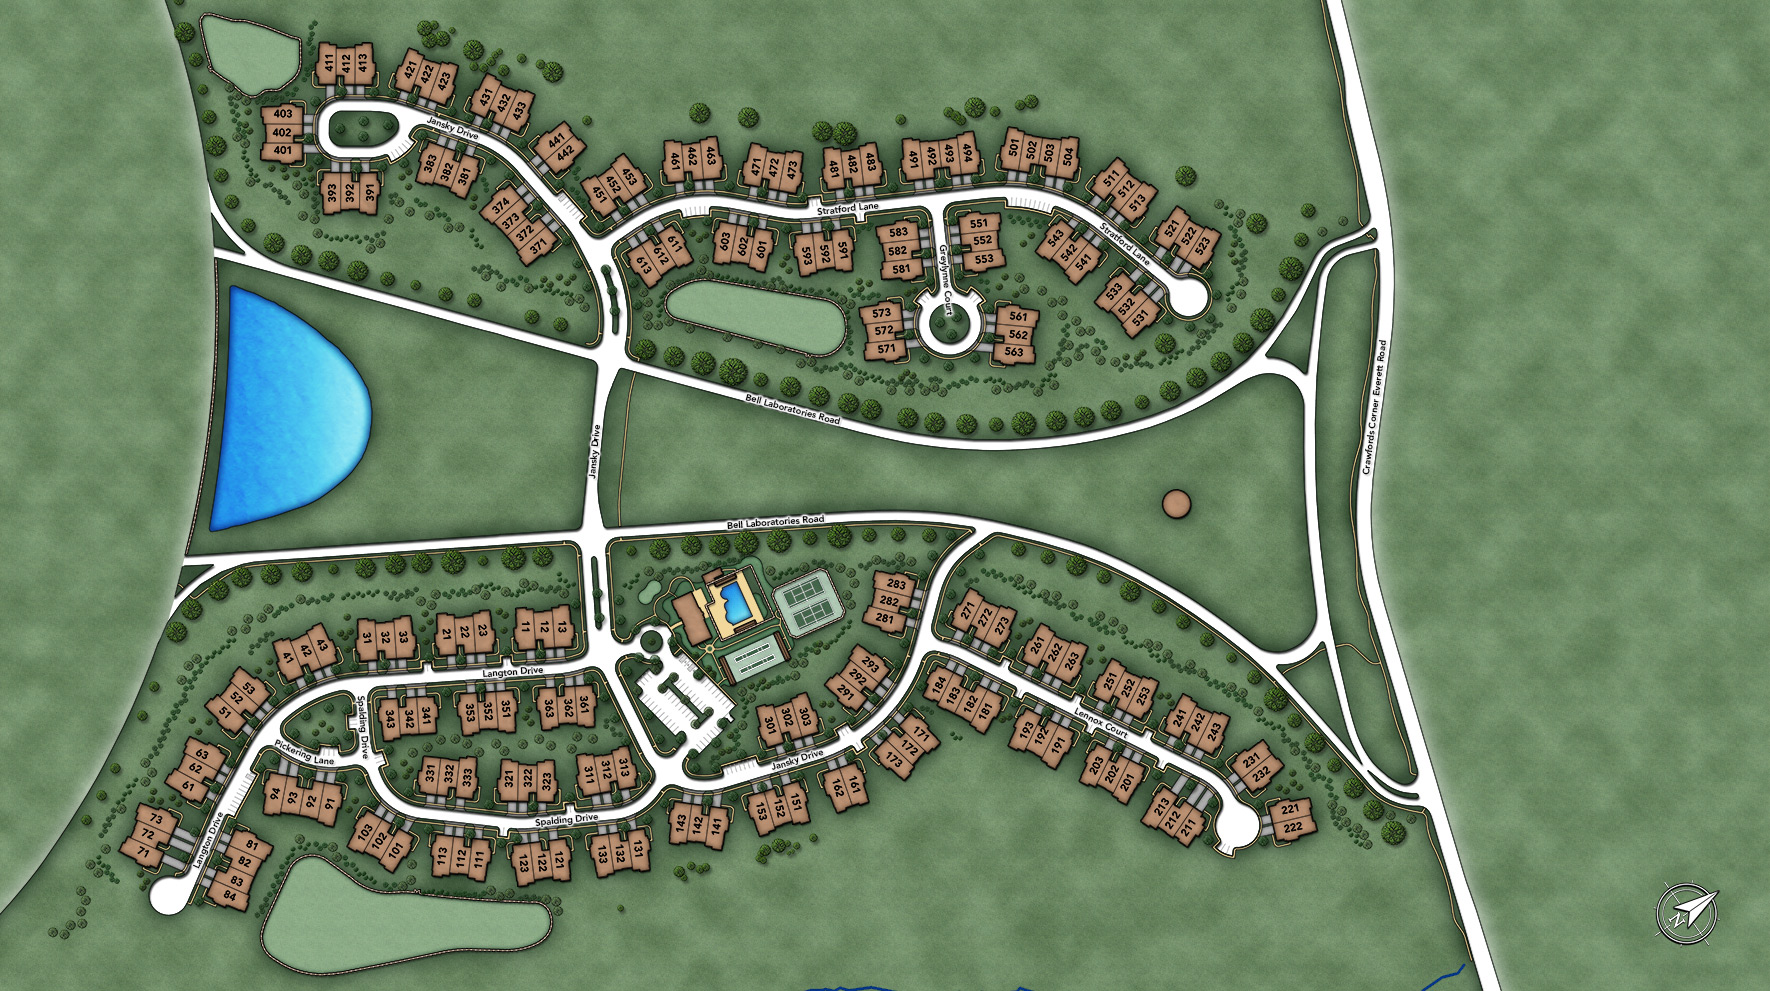 Regency at Holmdel Overall Site Plan